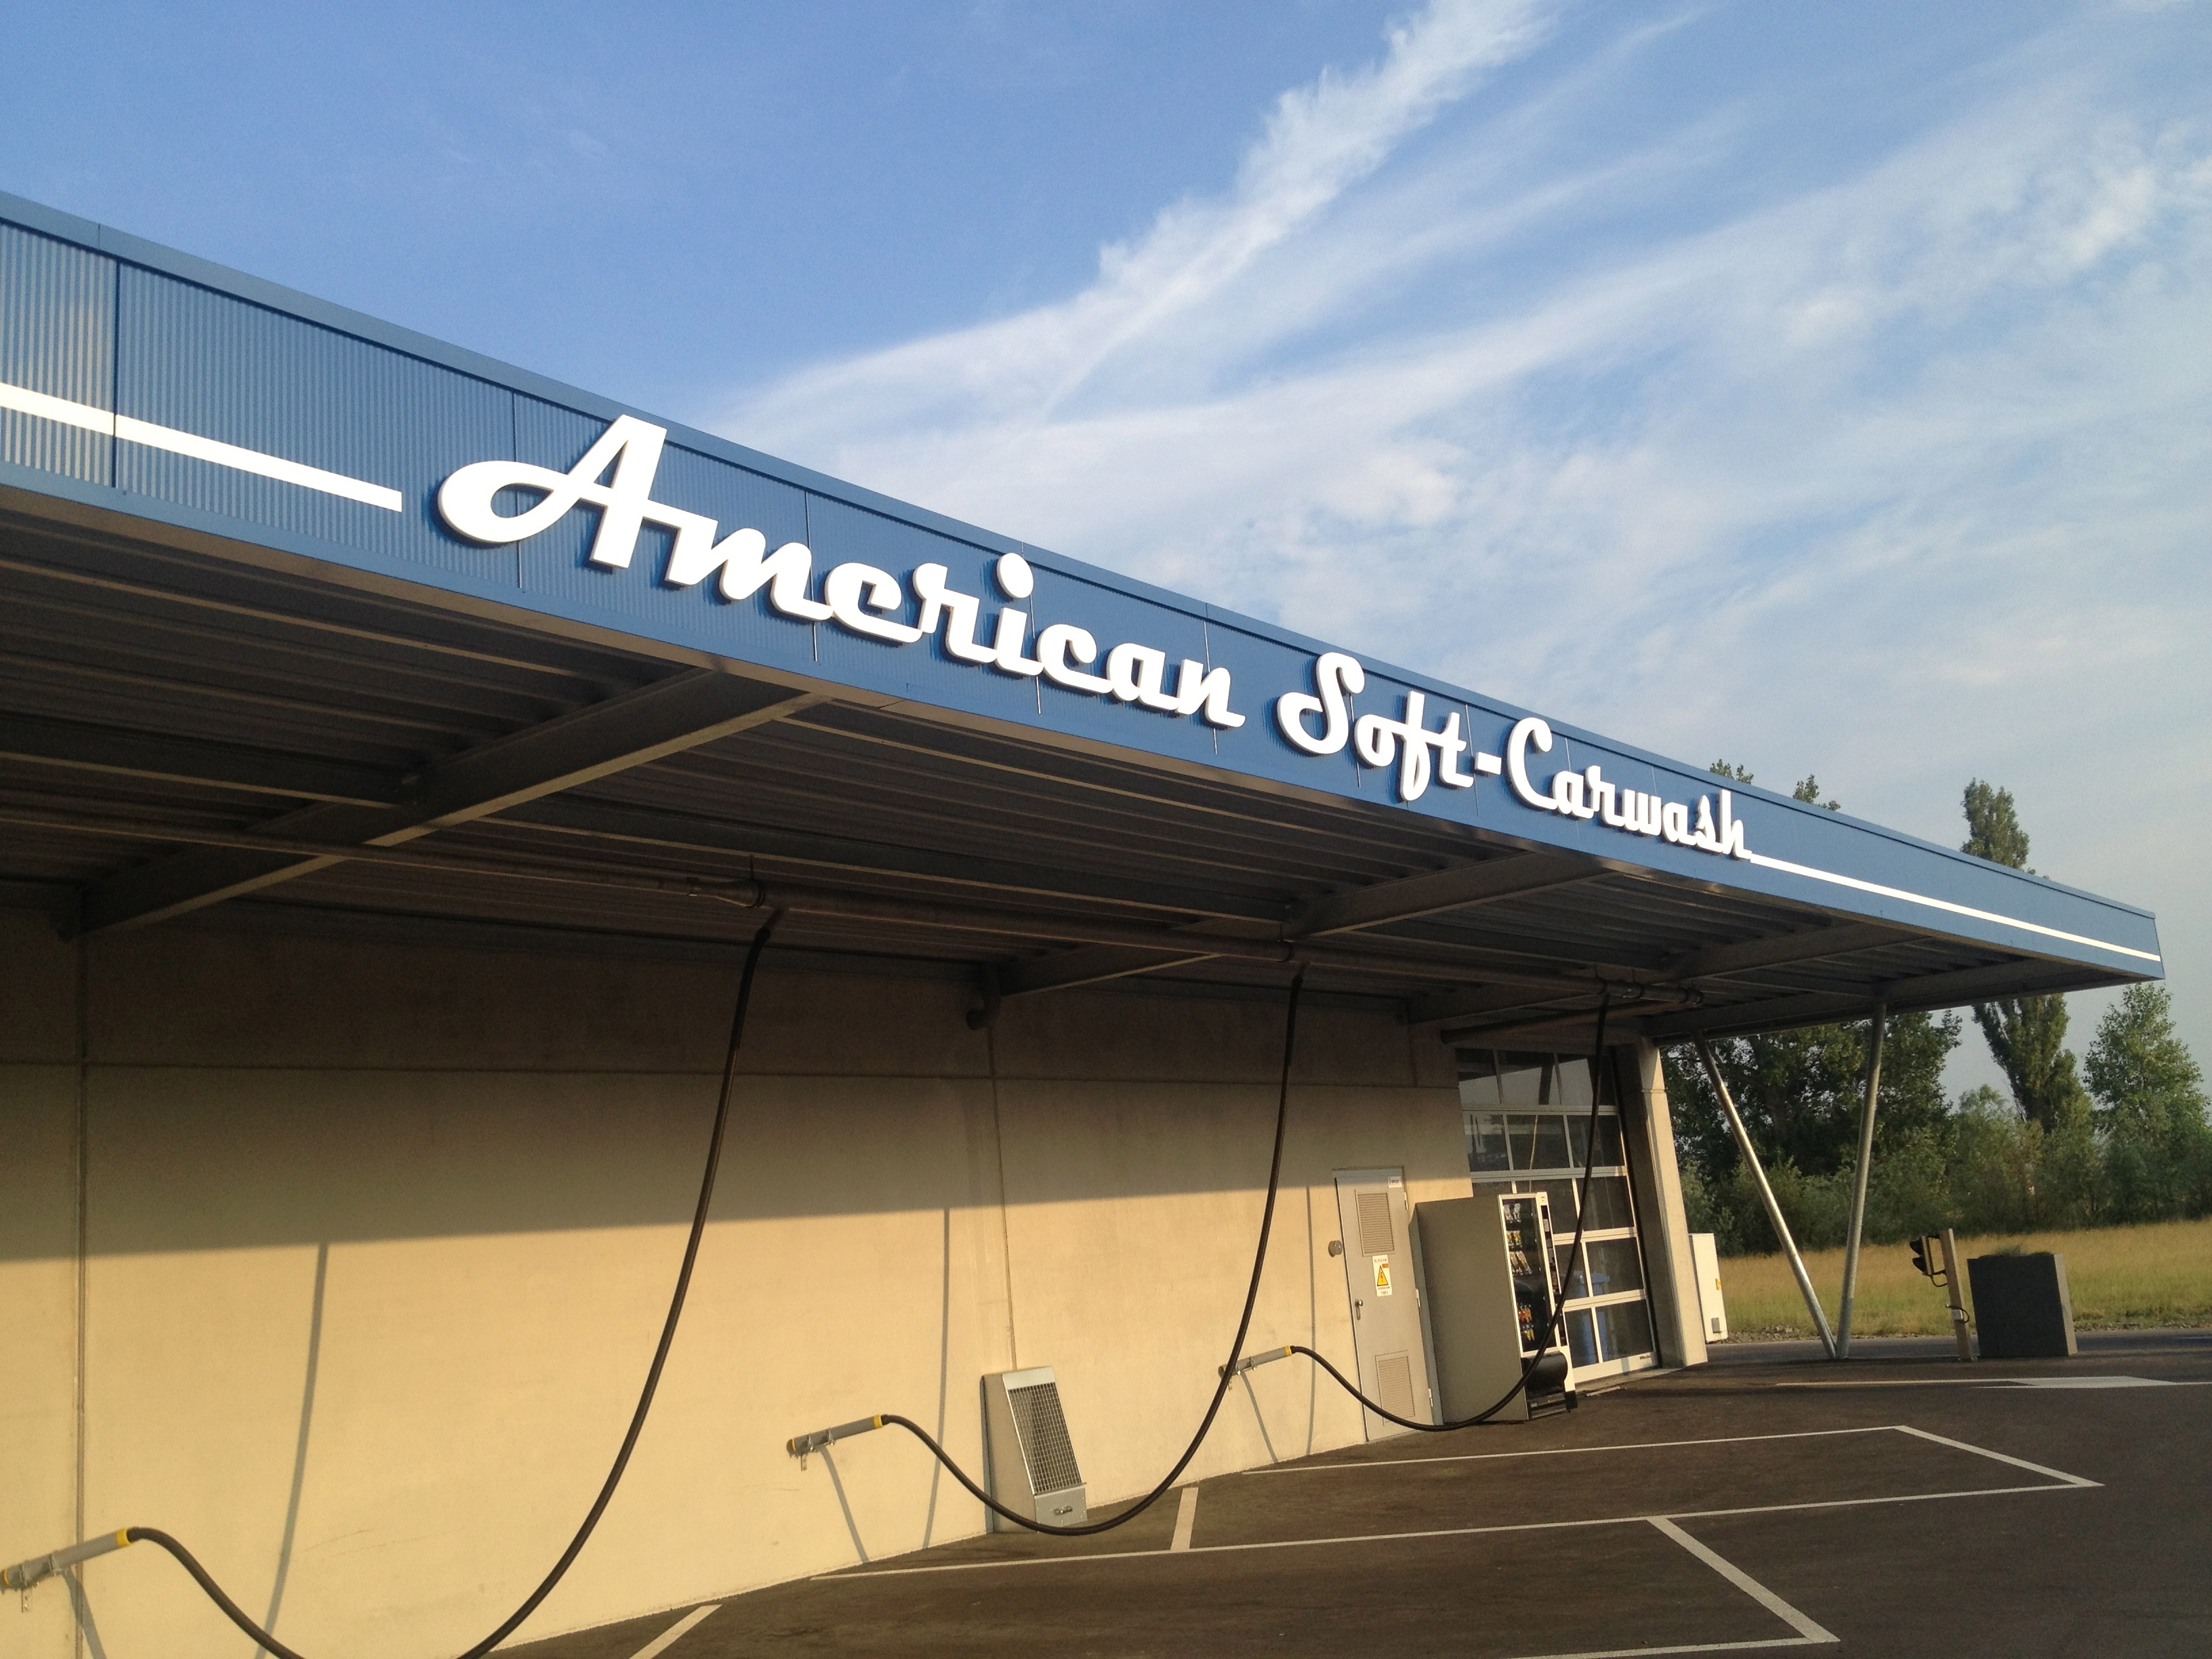 3D letters Amercian soft carwash